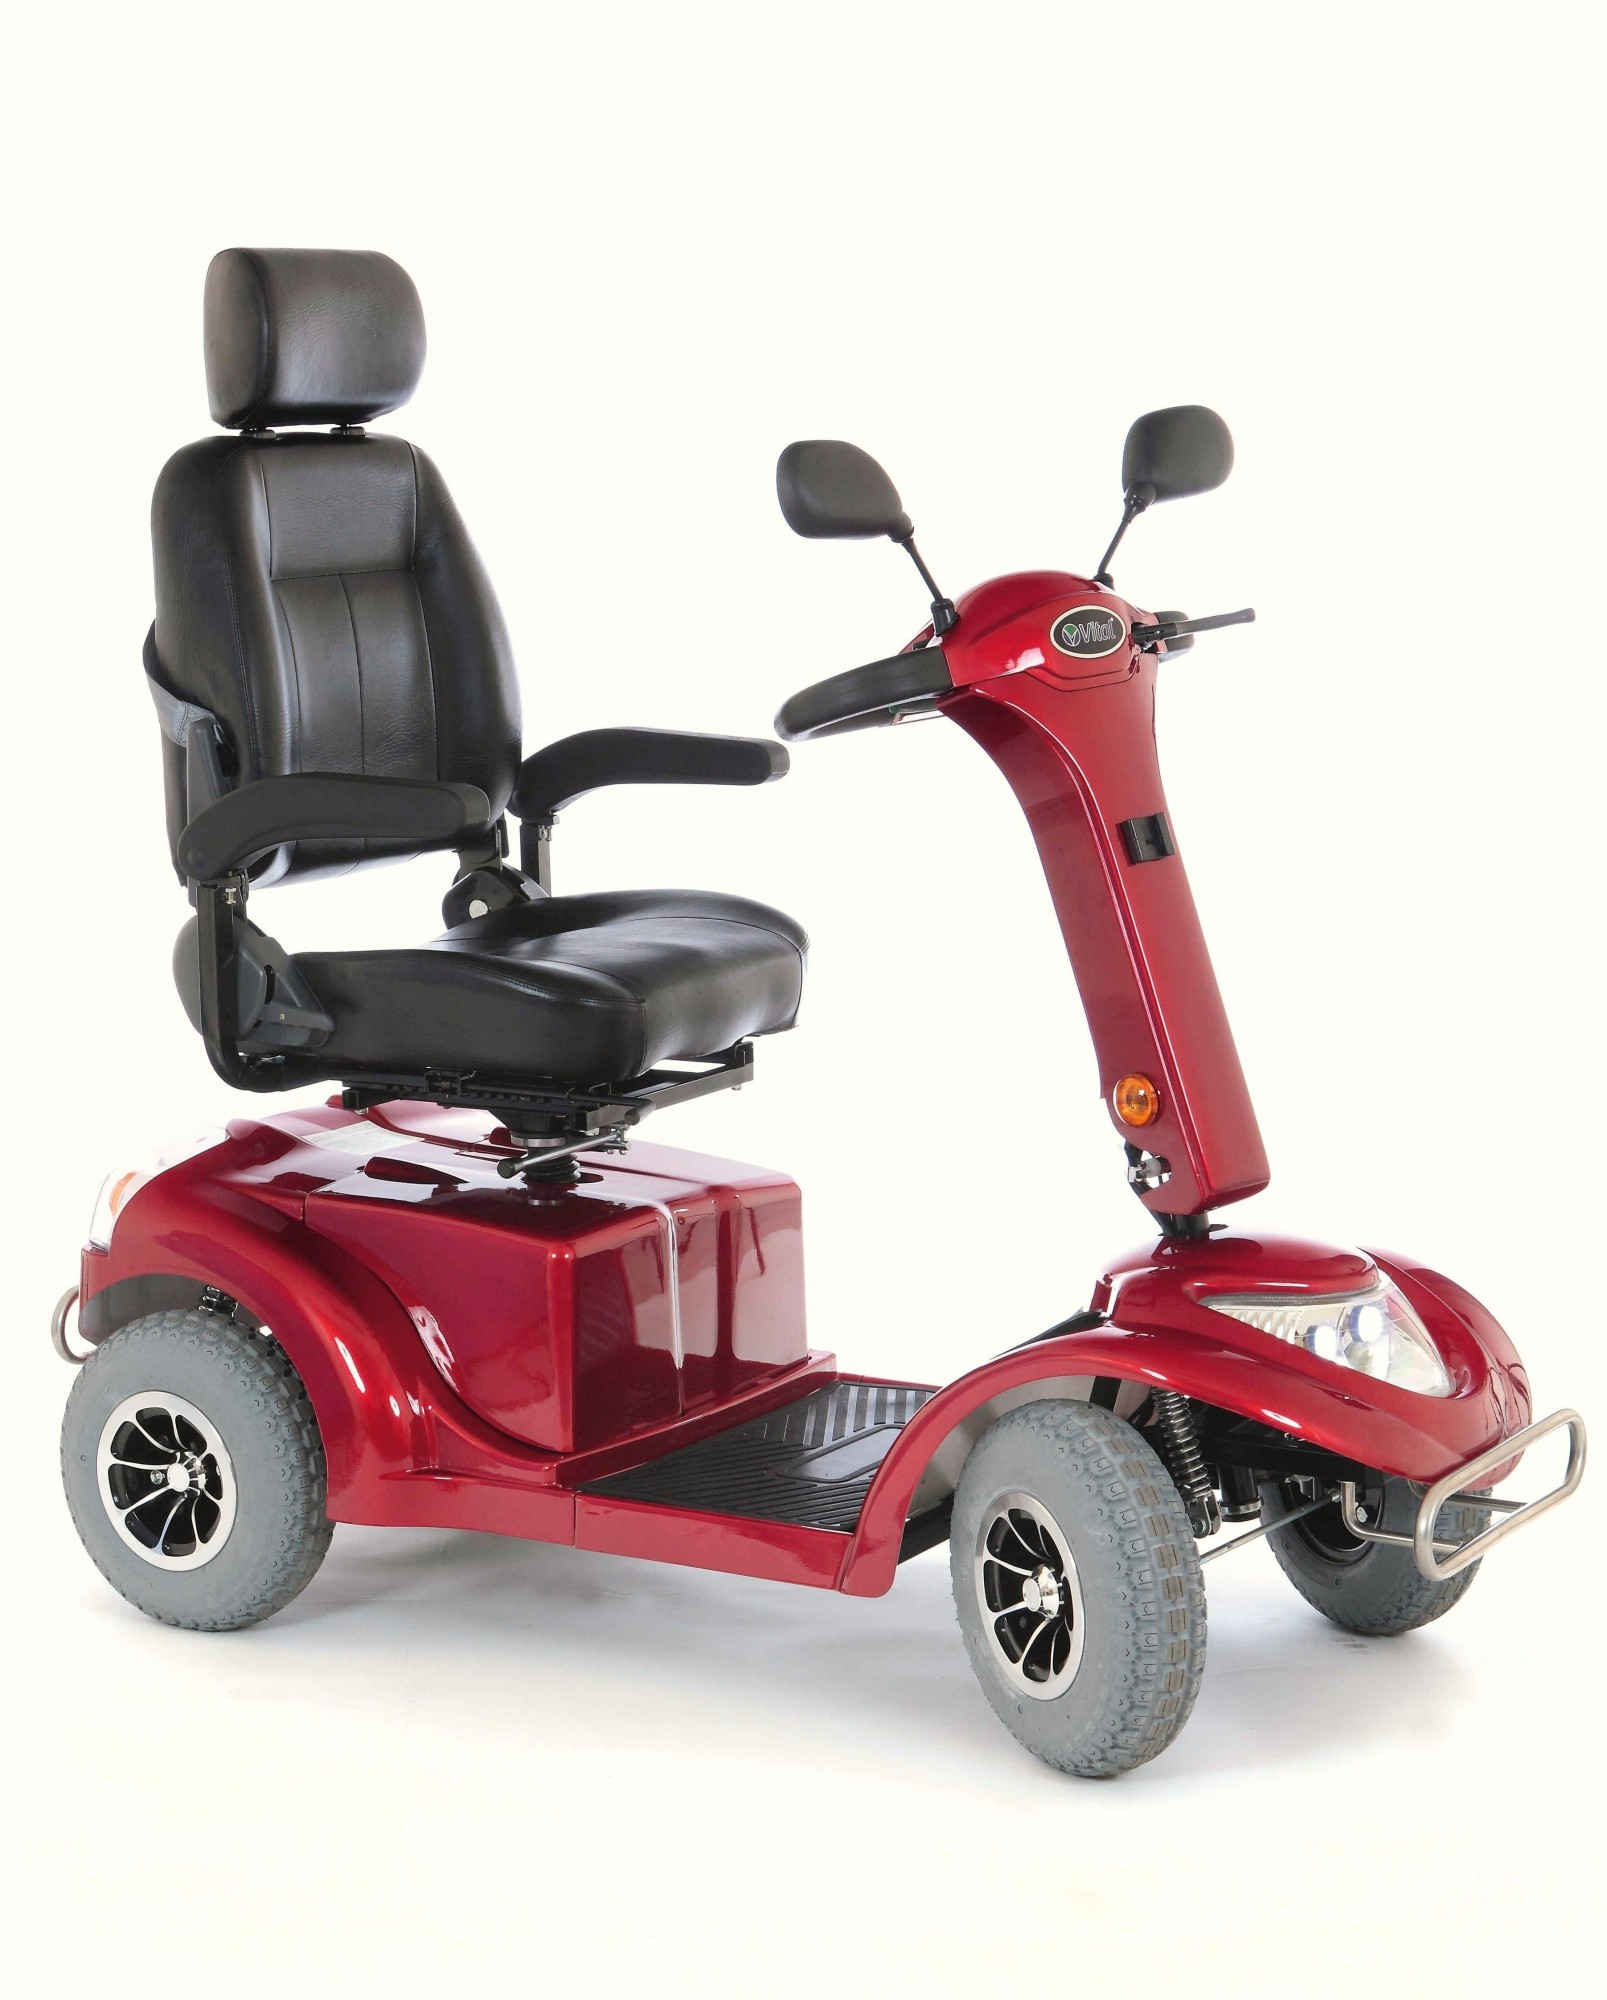 scooter lectrique 800w cruiser l4 puissant stable et confortable vital. Black Bedroom Furniture Sets. Home Design Ideas